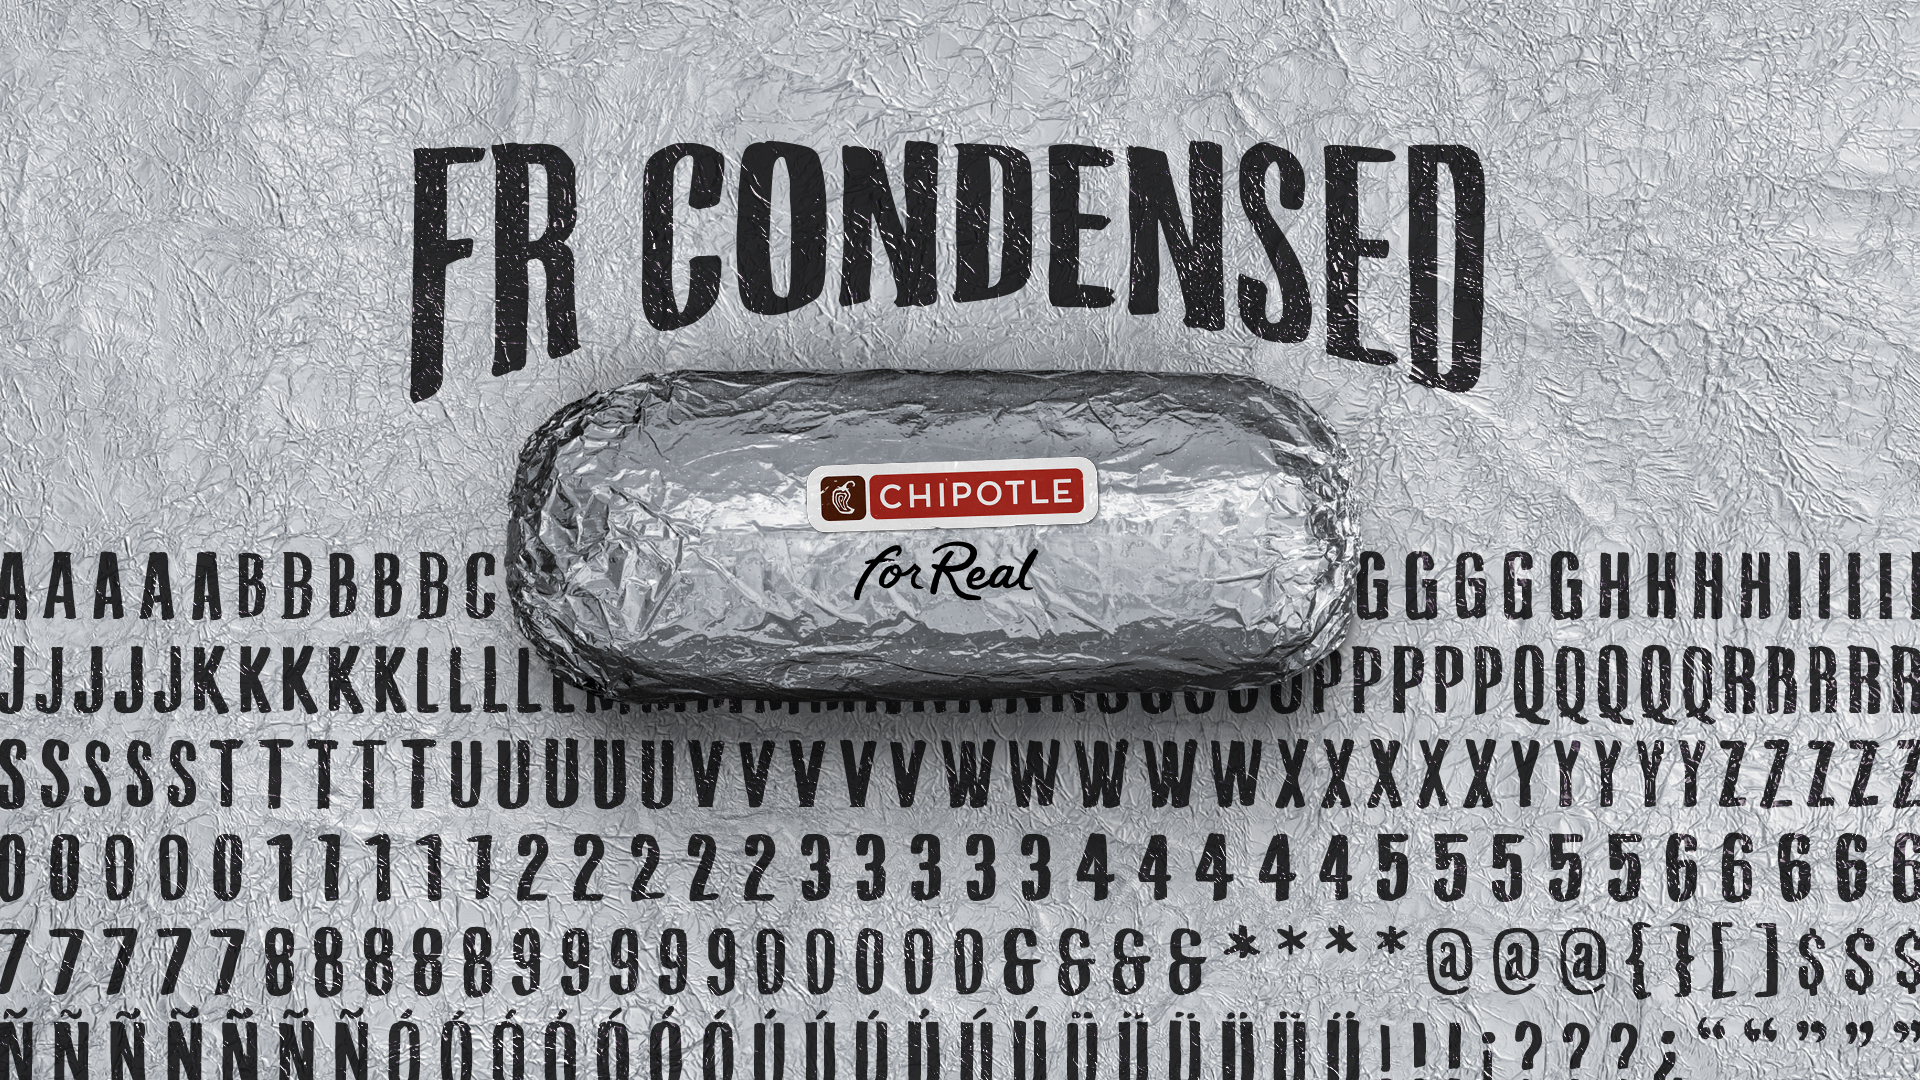 Chipotle_ForReal_Fonts_02_0000_Condensed